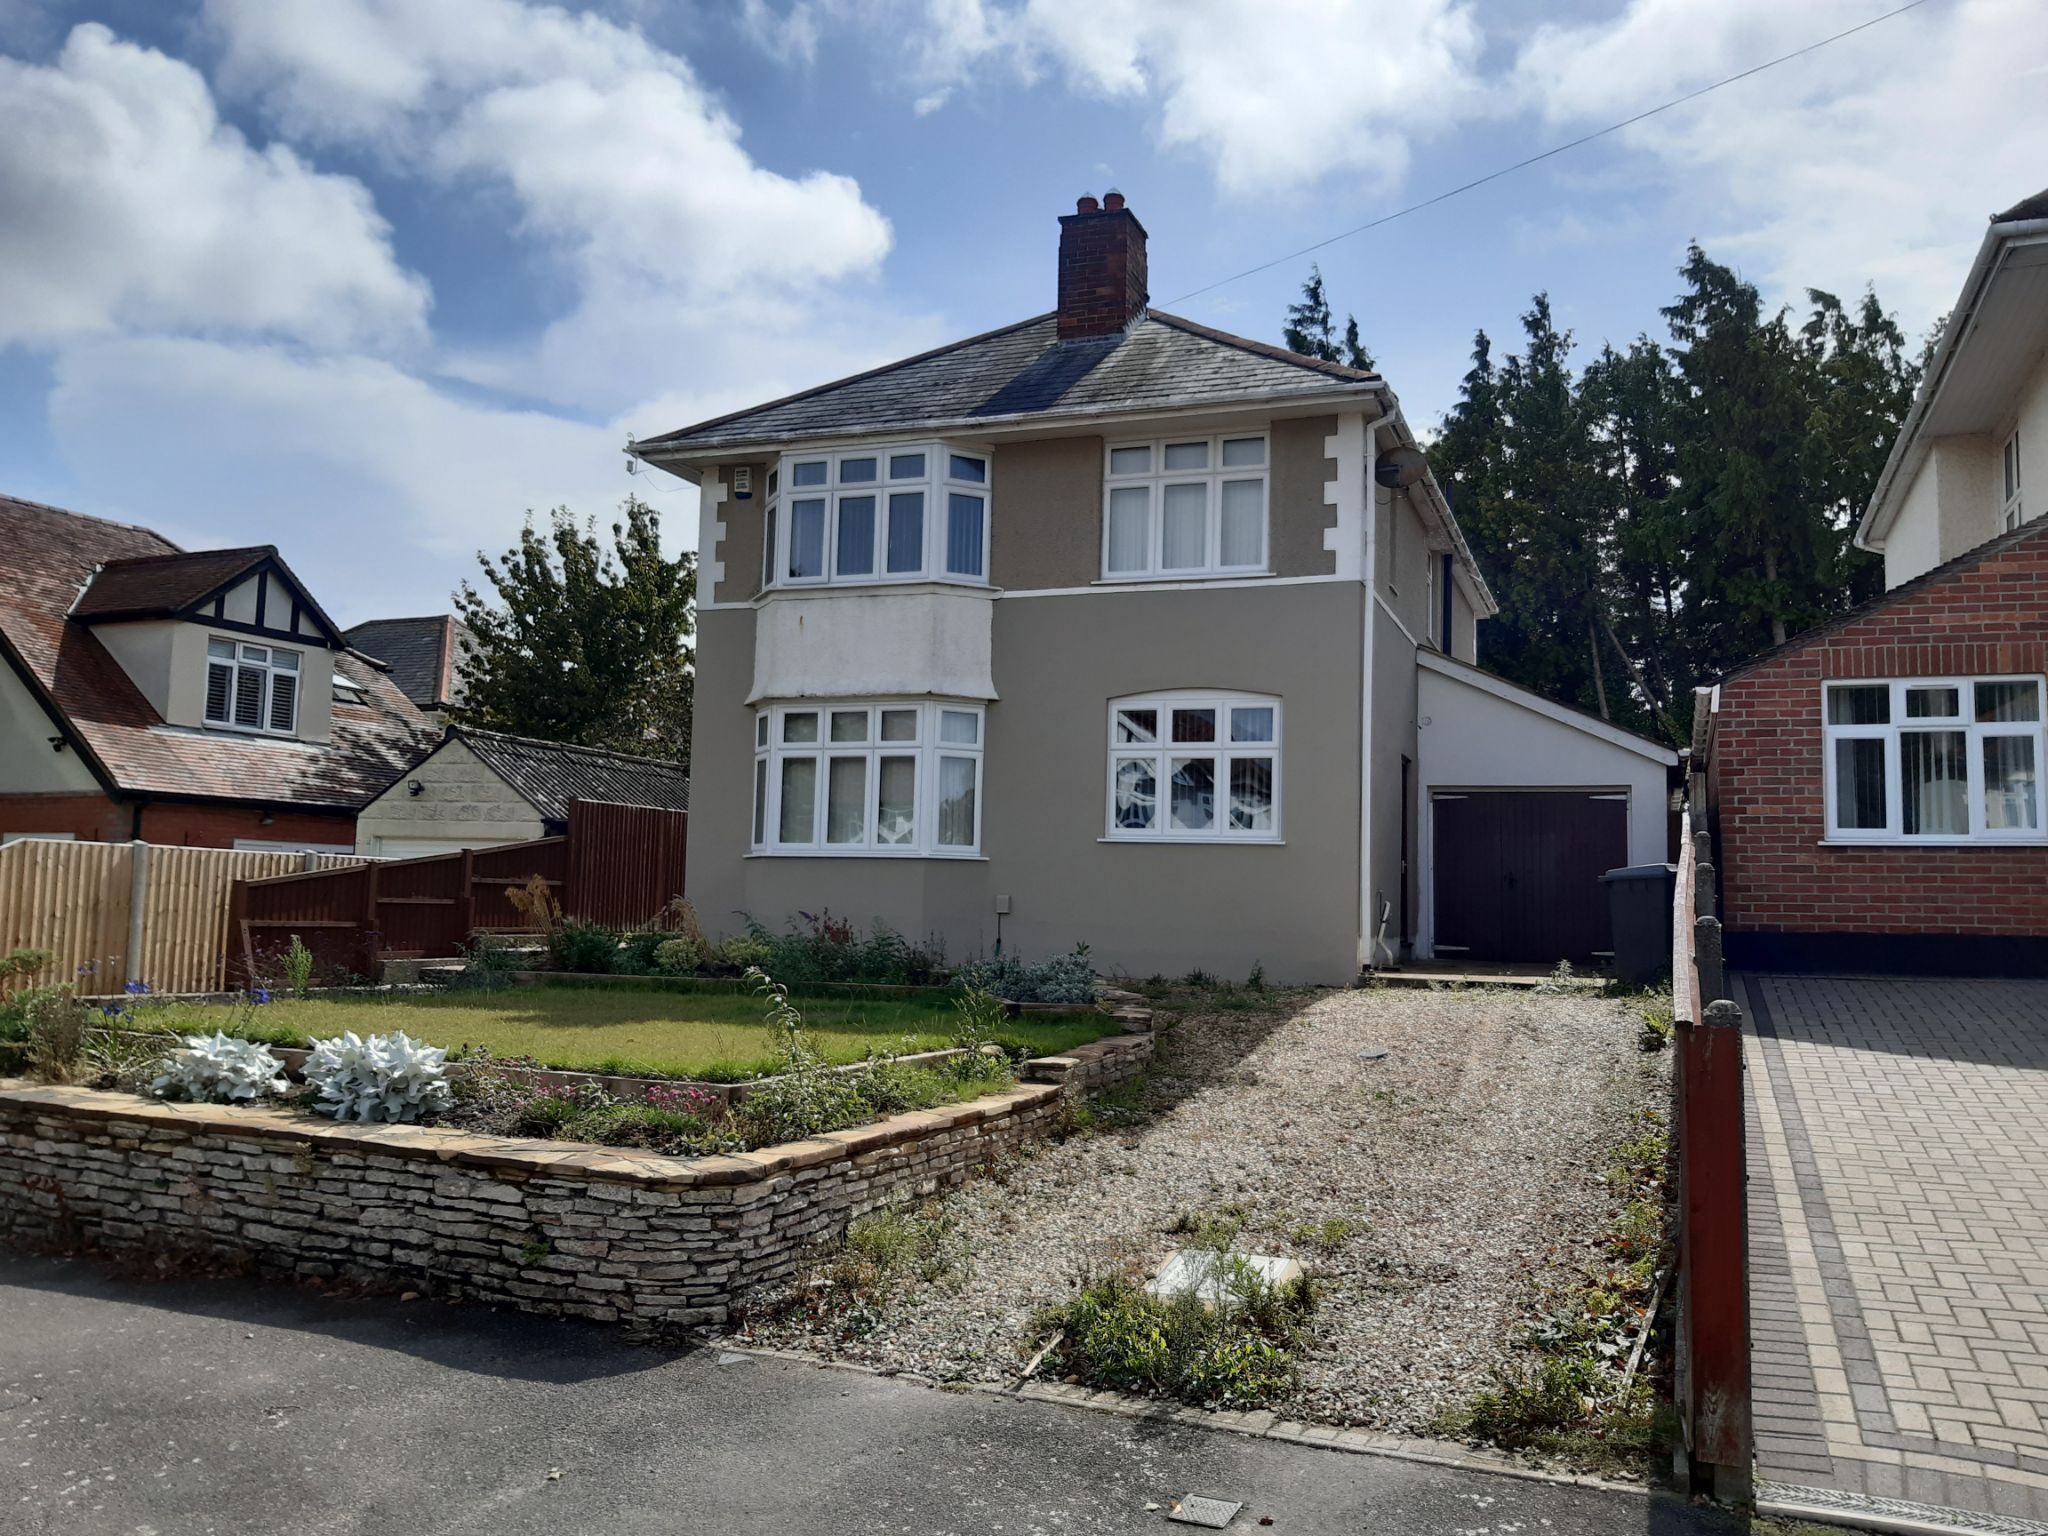 Main image for 57 Meon Road